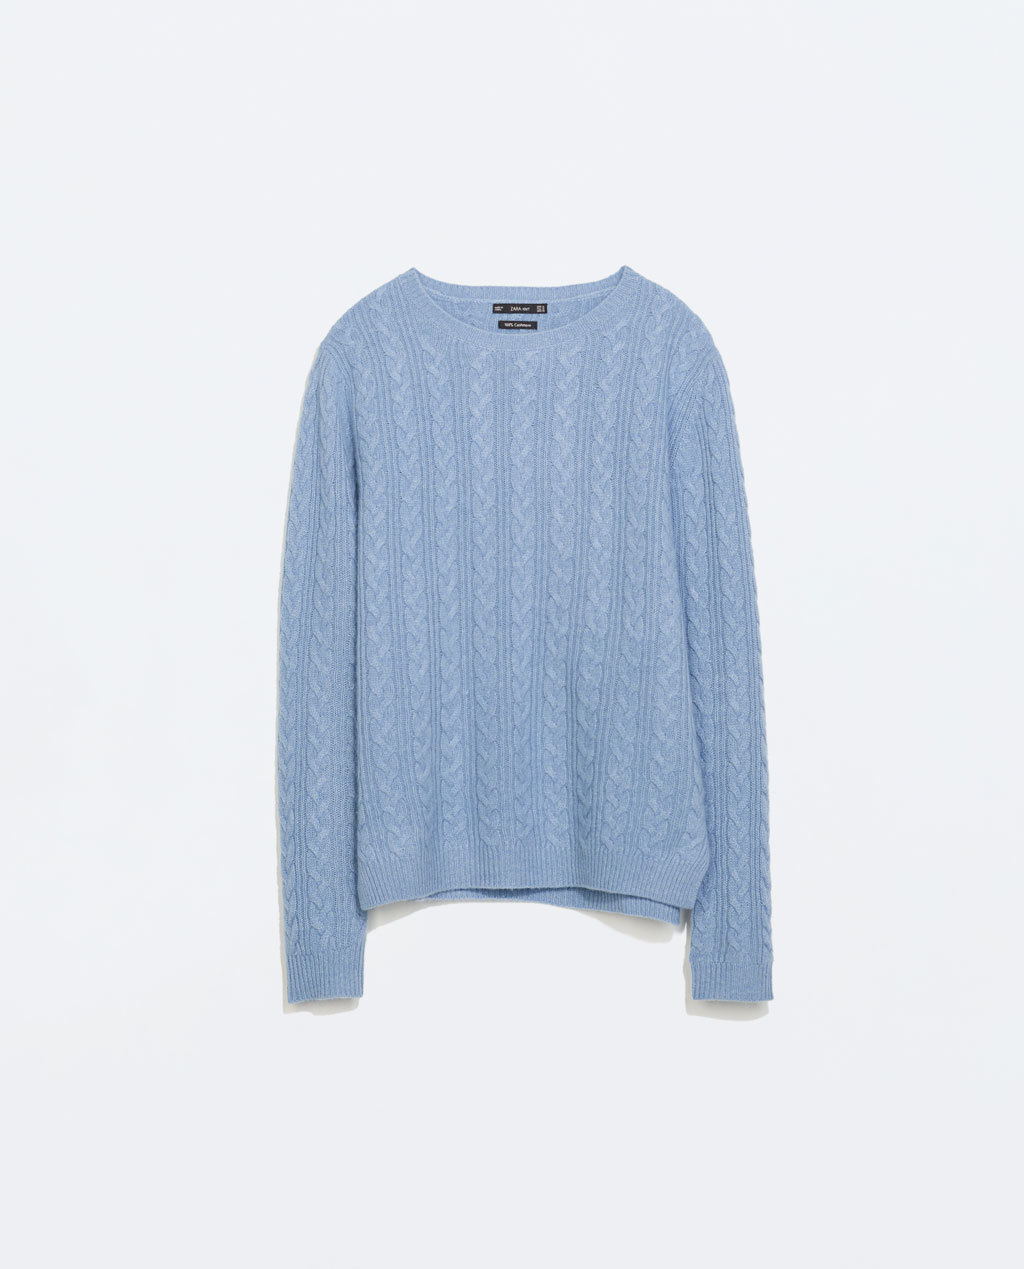 Cableknit Cashmere Sweater - neckline: round neck; style: standard; pattern: cable knit; predominant colour: pale blue; occasions: casual, creative work; length: standard; fit: standard fit; fibres: cashmere - 100%; sleeve length: long sleeve; sleeve style: standard; texture group: knits/crochet; pattern type: knitted - fine stitch; pattern size: standard; trends: statement knits; season: a/w 2014